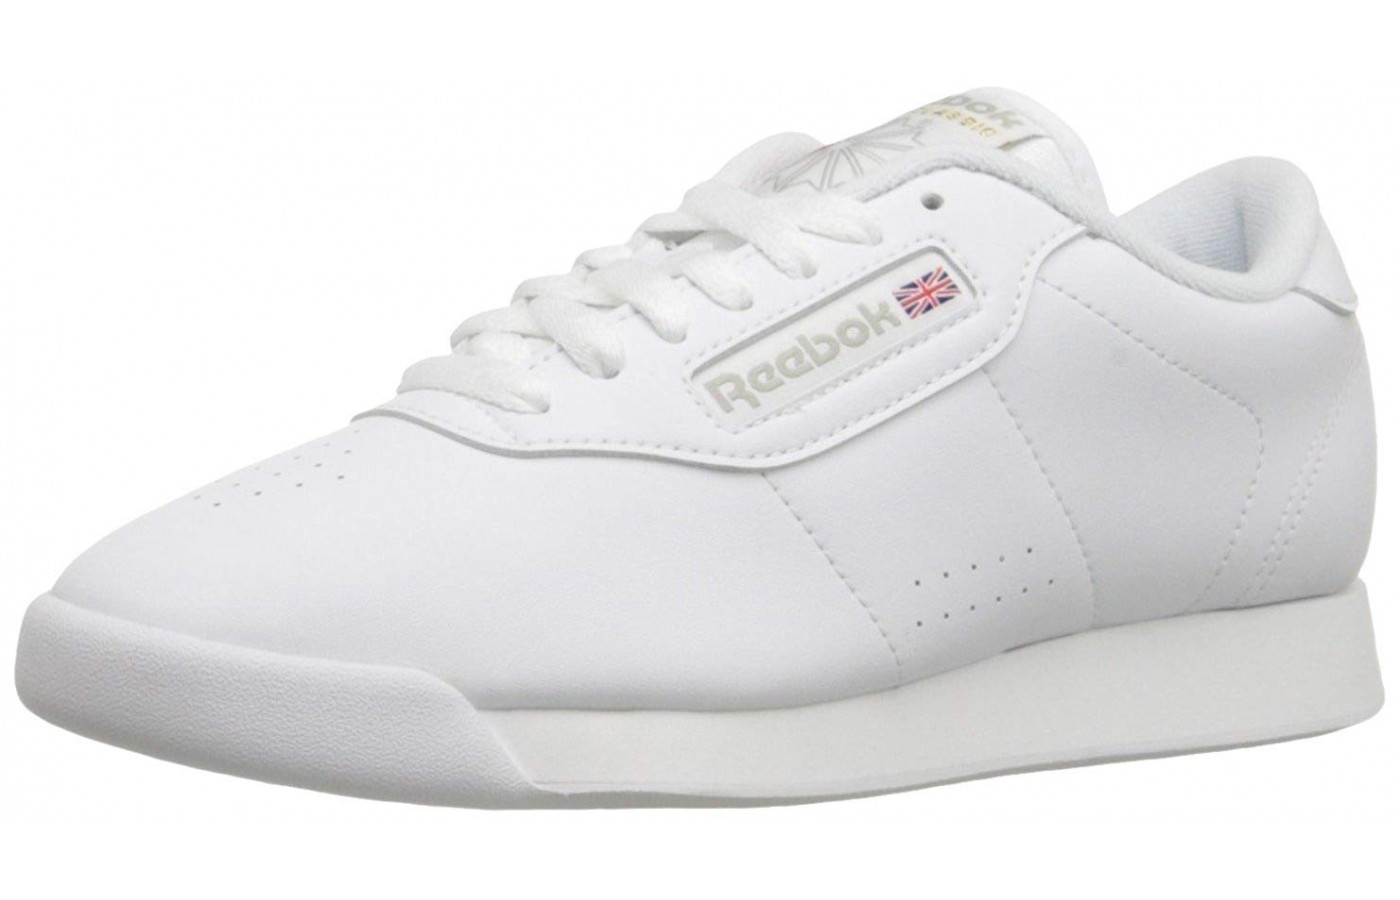 Reebok Princess Angled View